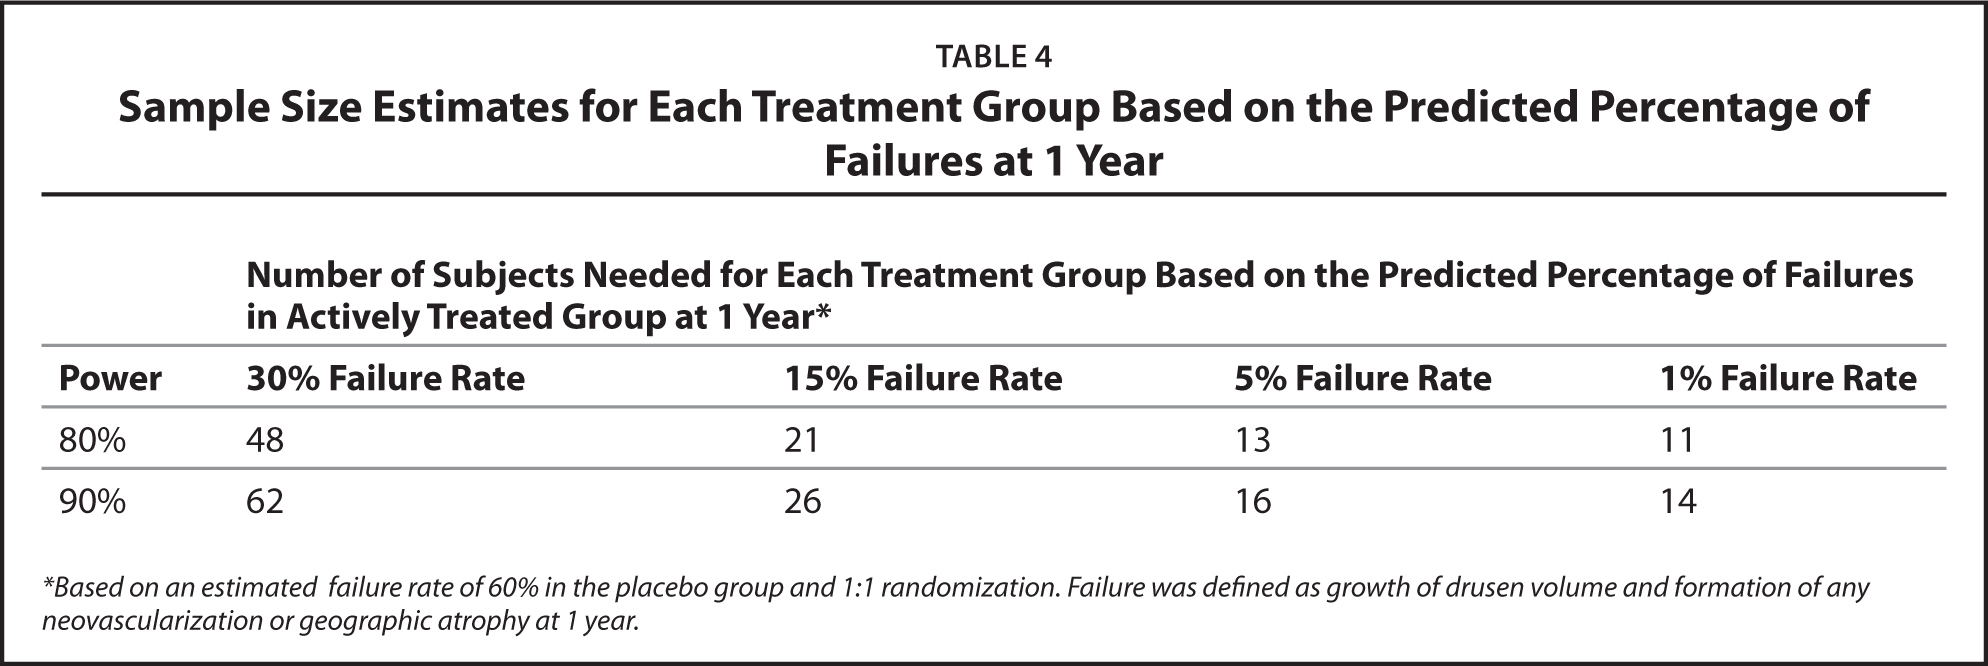 Sample Size Estimates for Each Treatment Group Based on the Predicted Percentage of Failures at 1 Year